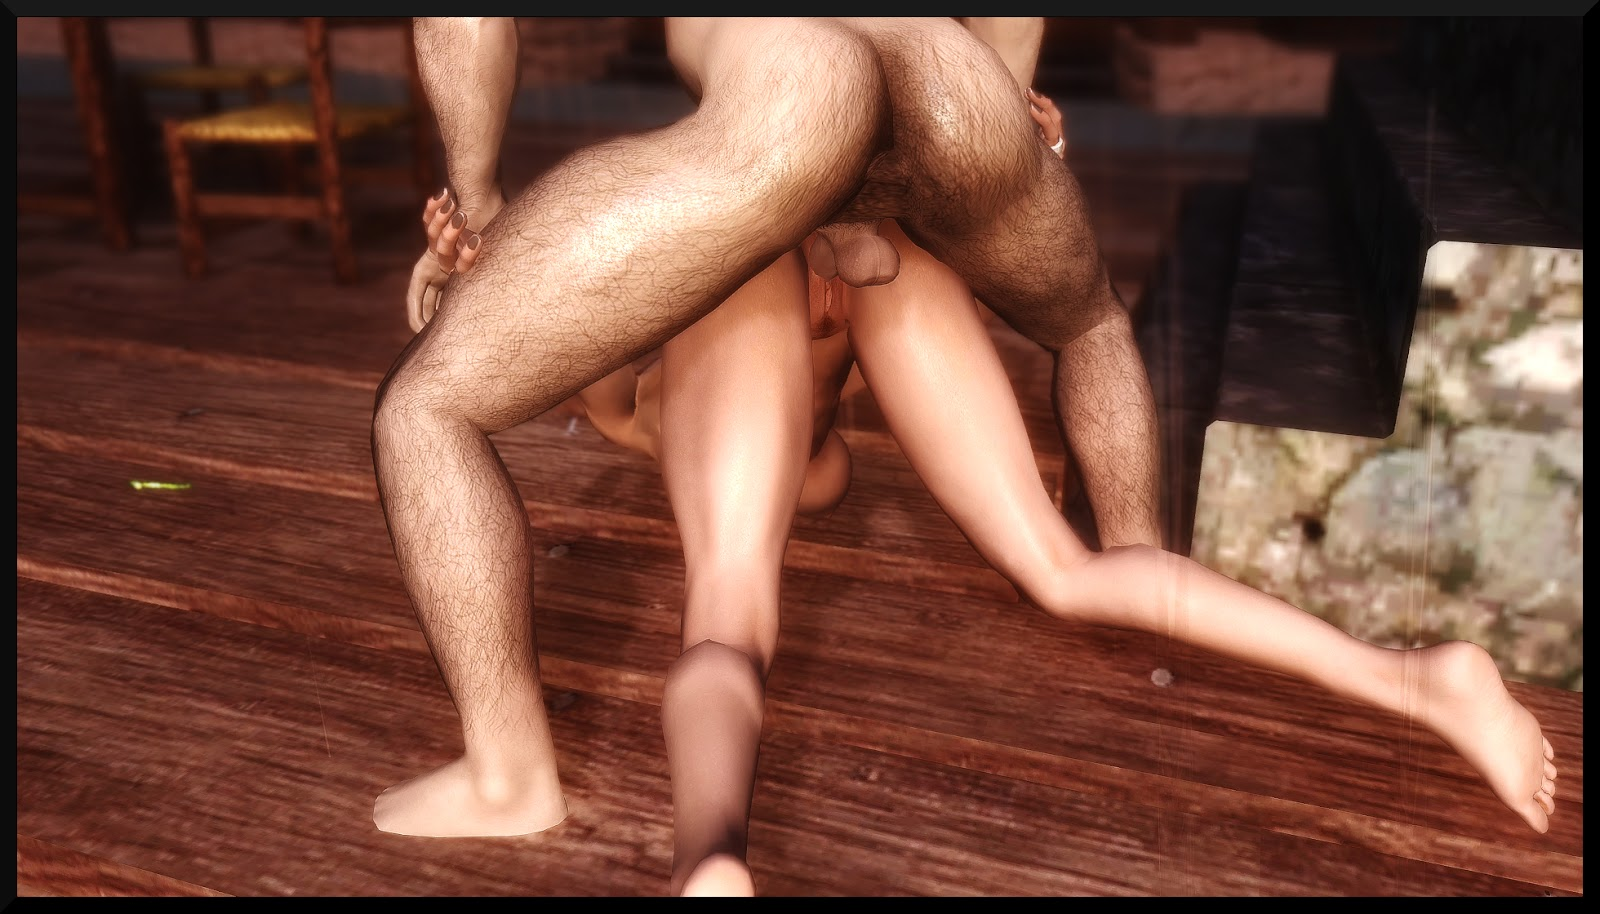 Skyrim mods nude not youtube softcore pictures